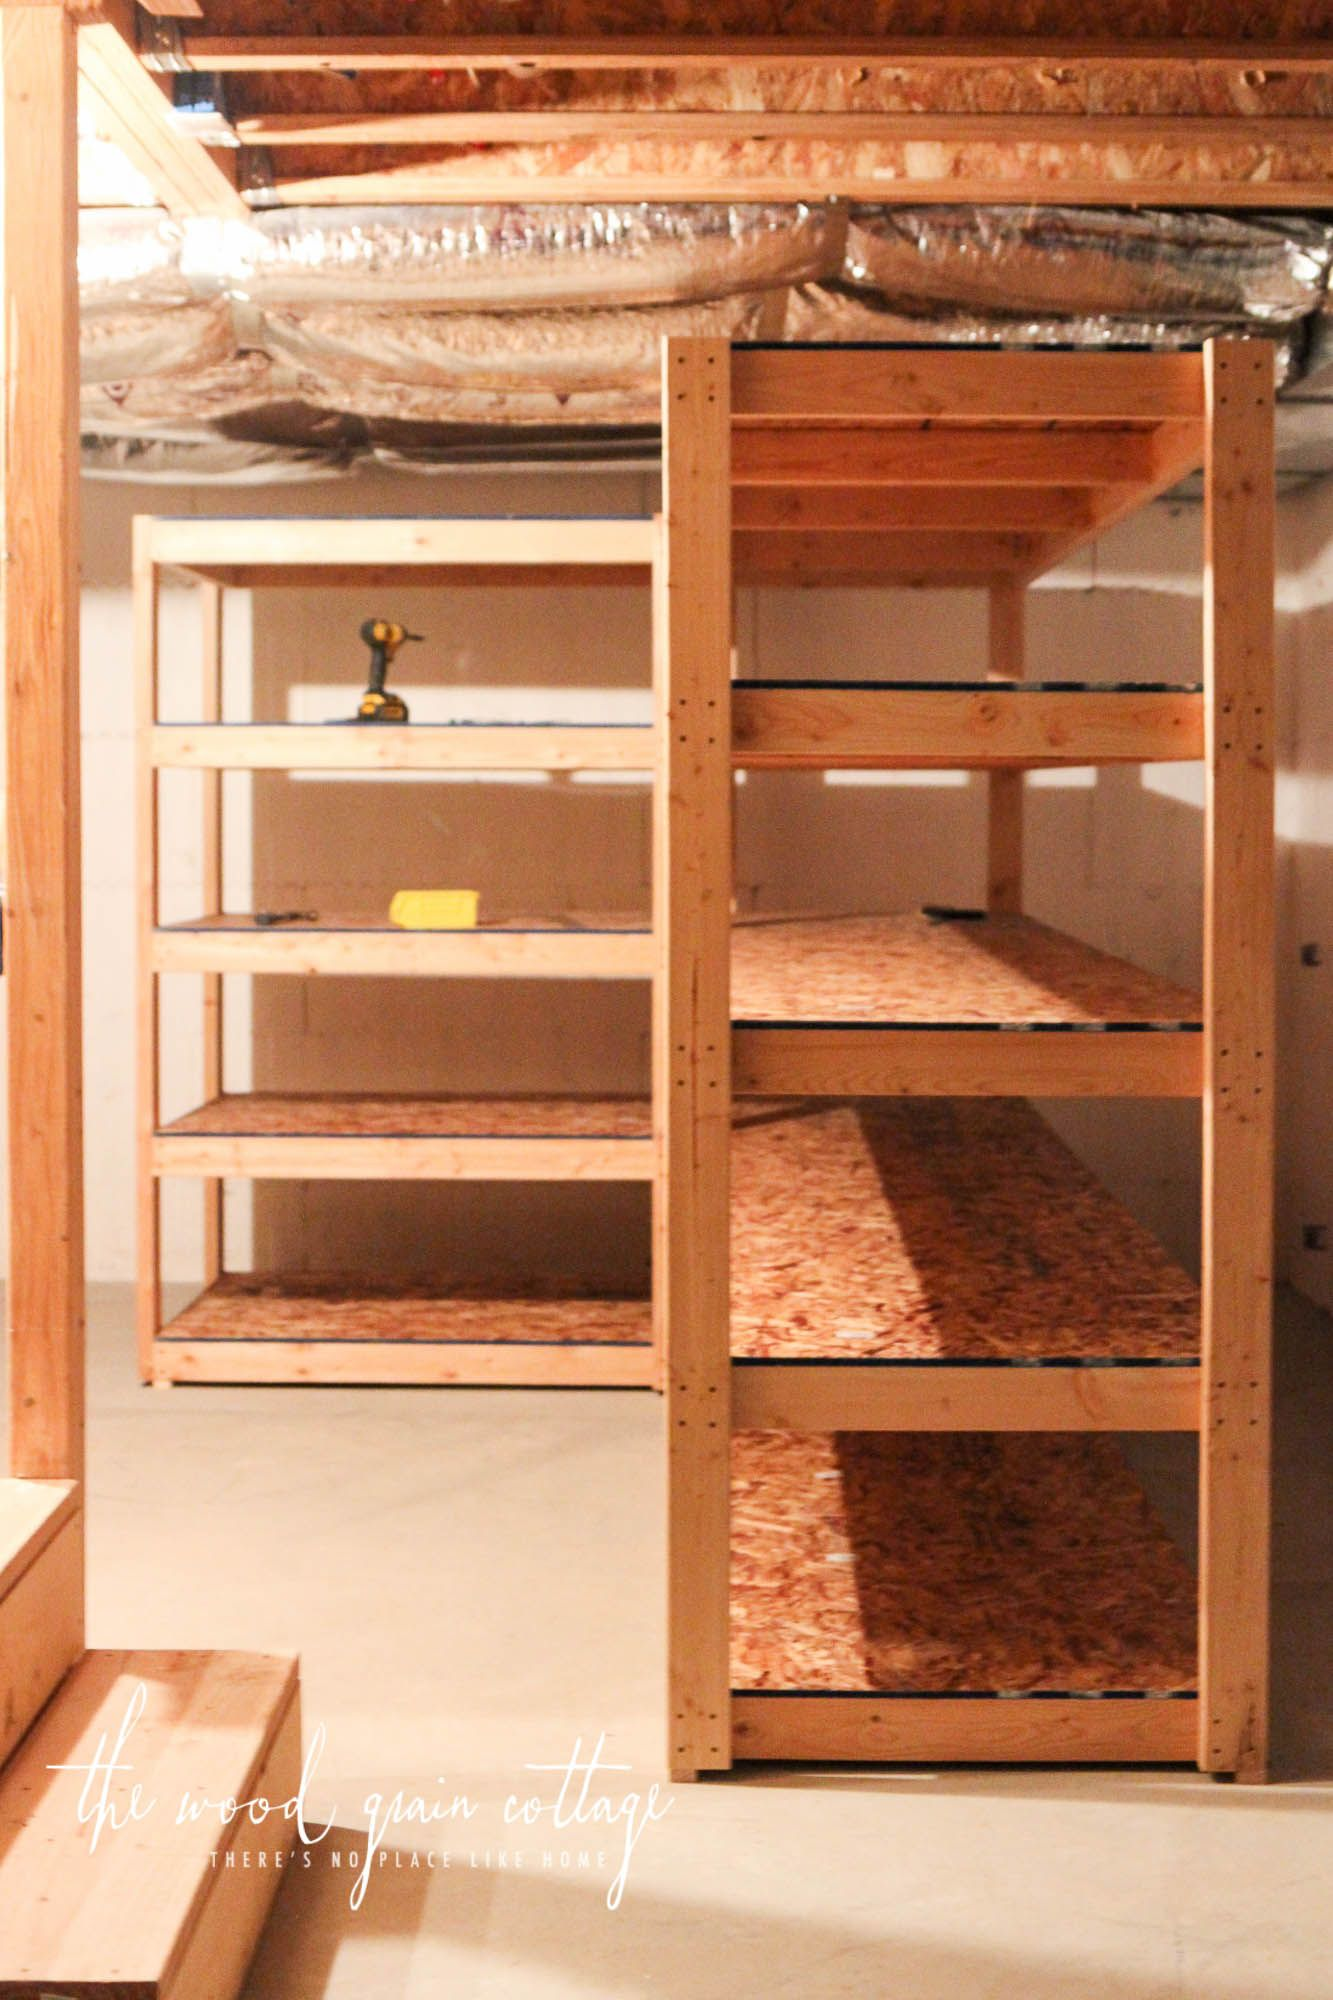 DIY Basement Shelving Basement shelving, Basement